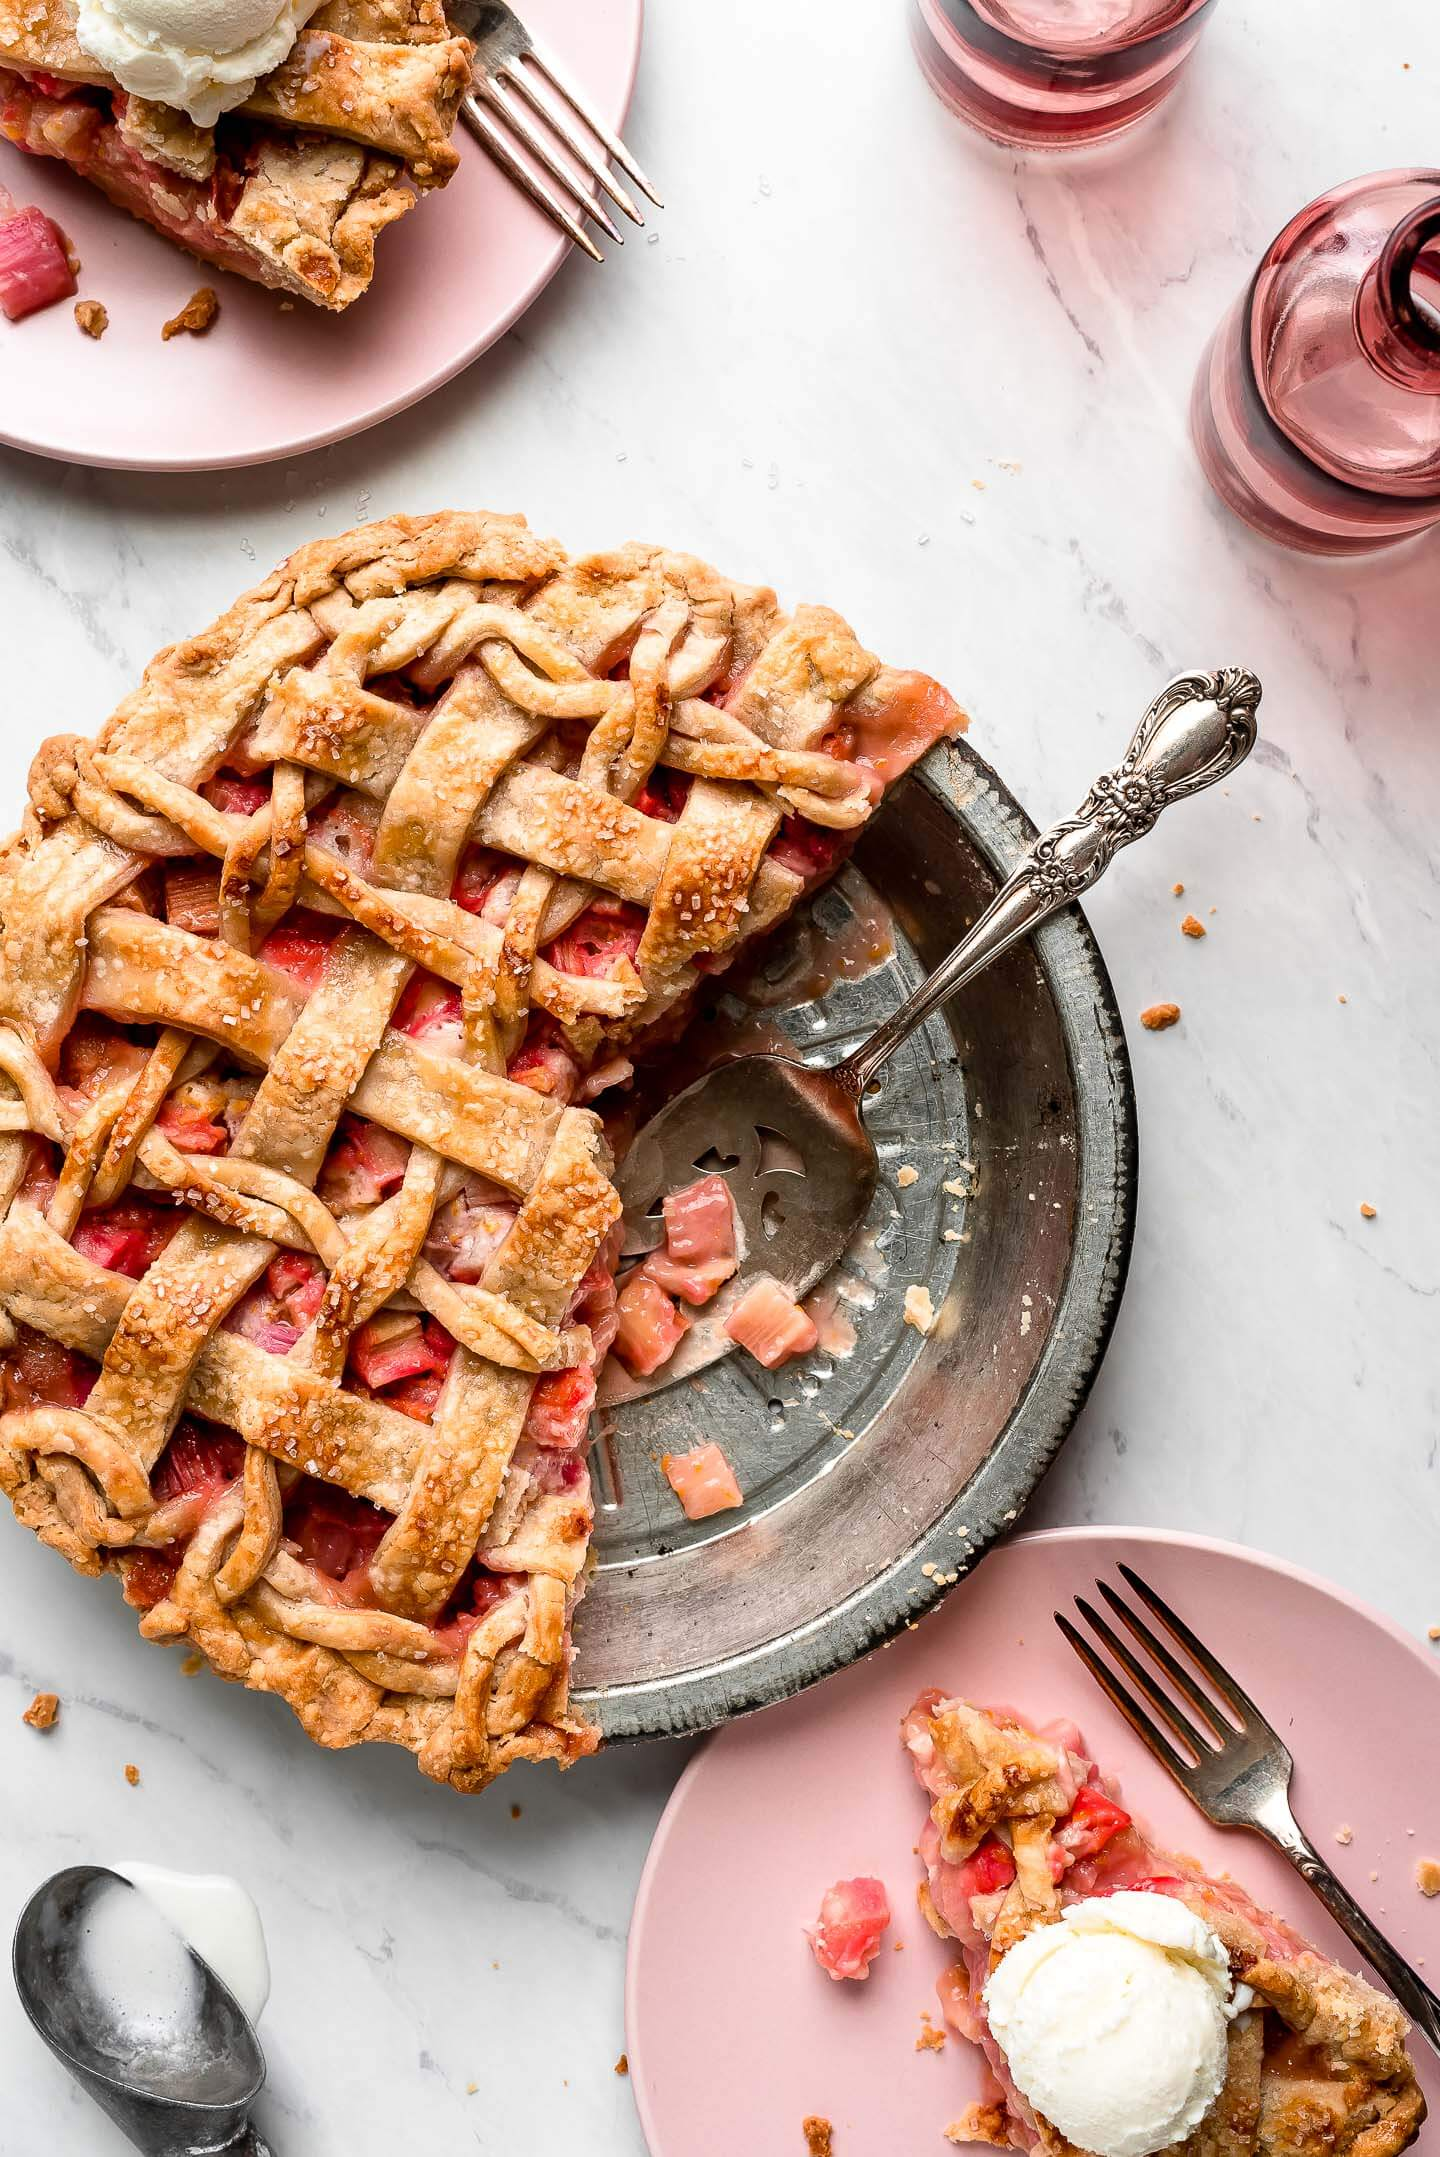 A tin of half a Rhubarb Pie with slices on plates topped with ice cream.